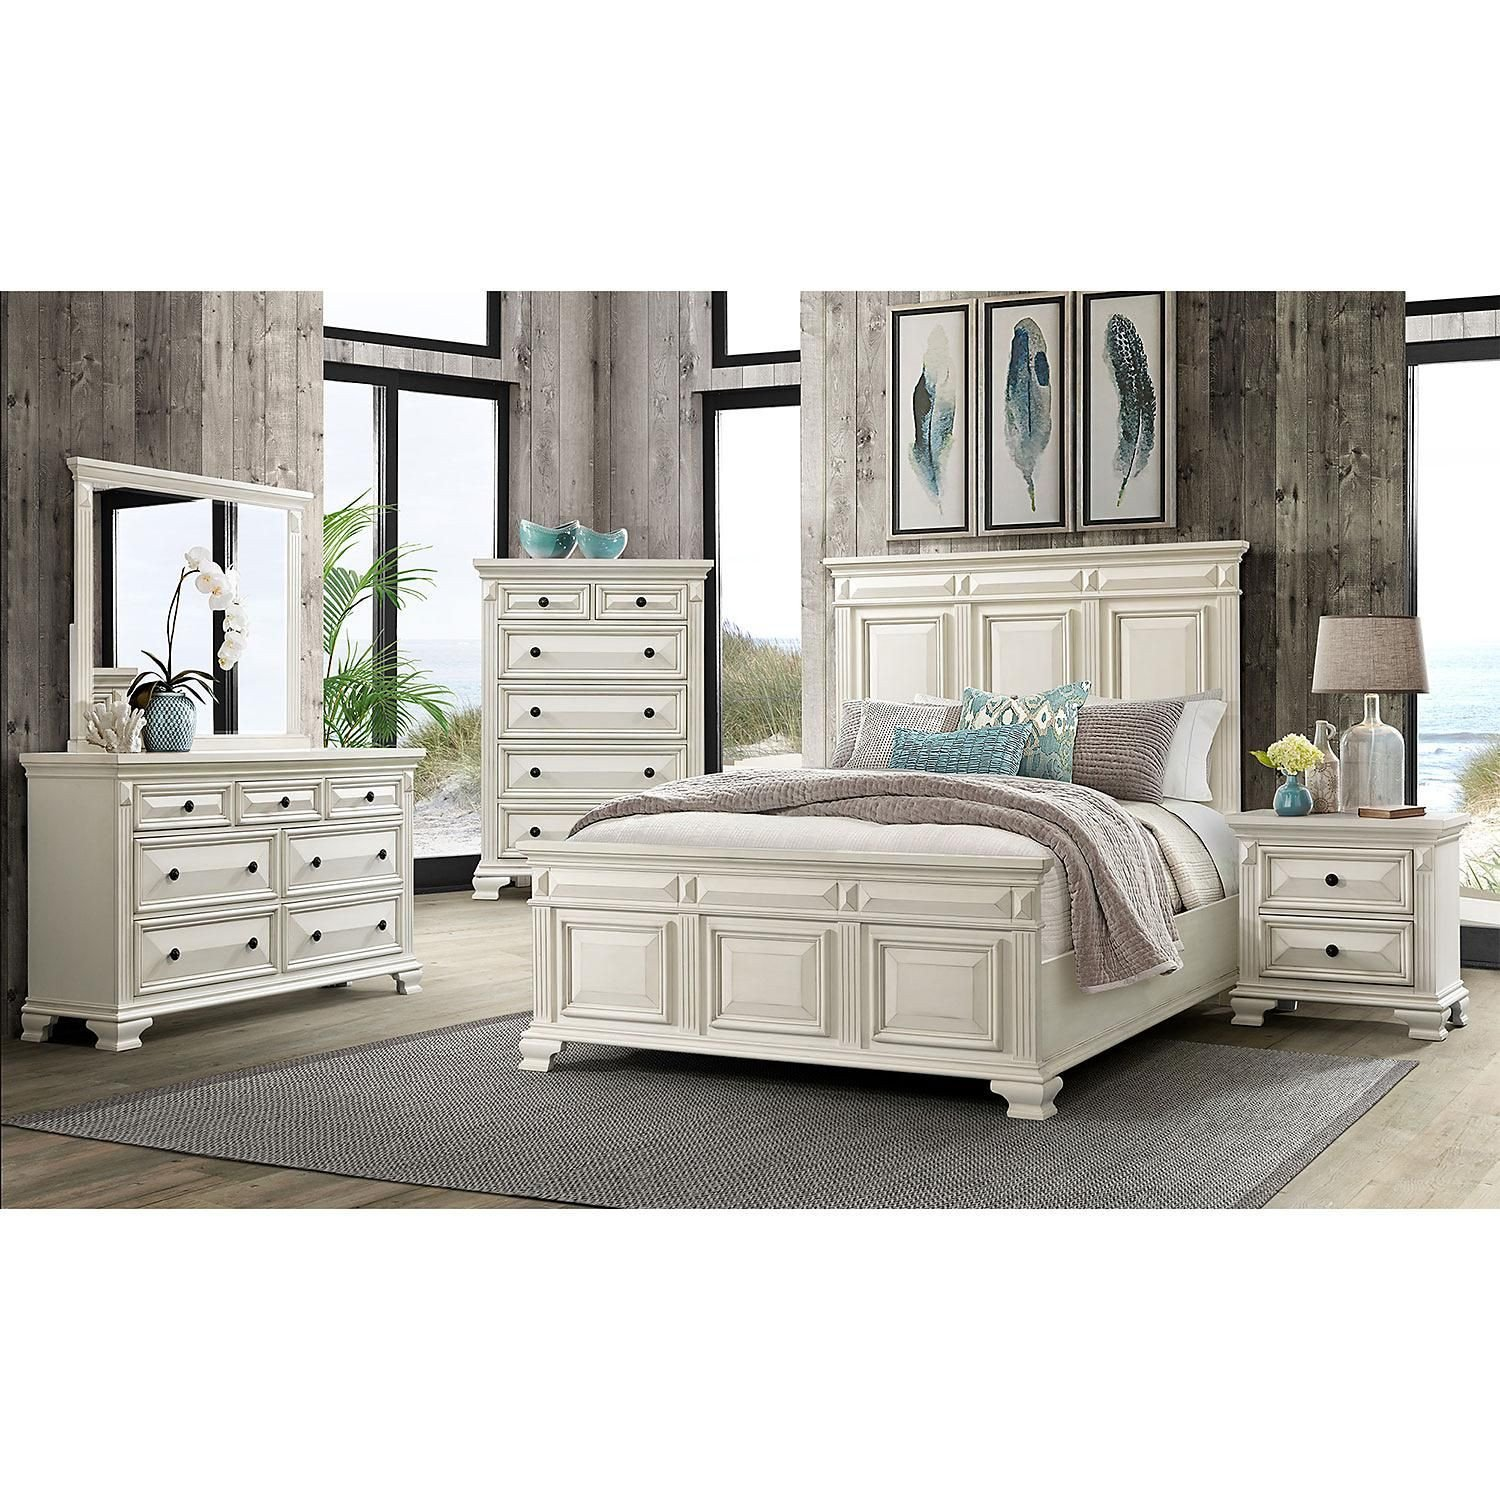 Rooms to Go Bedroom Set King Lovely $1599 00 society Den Trent Panel 6 Piece King Bedroom Set